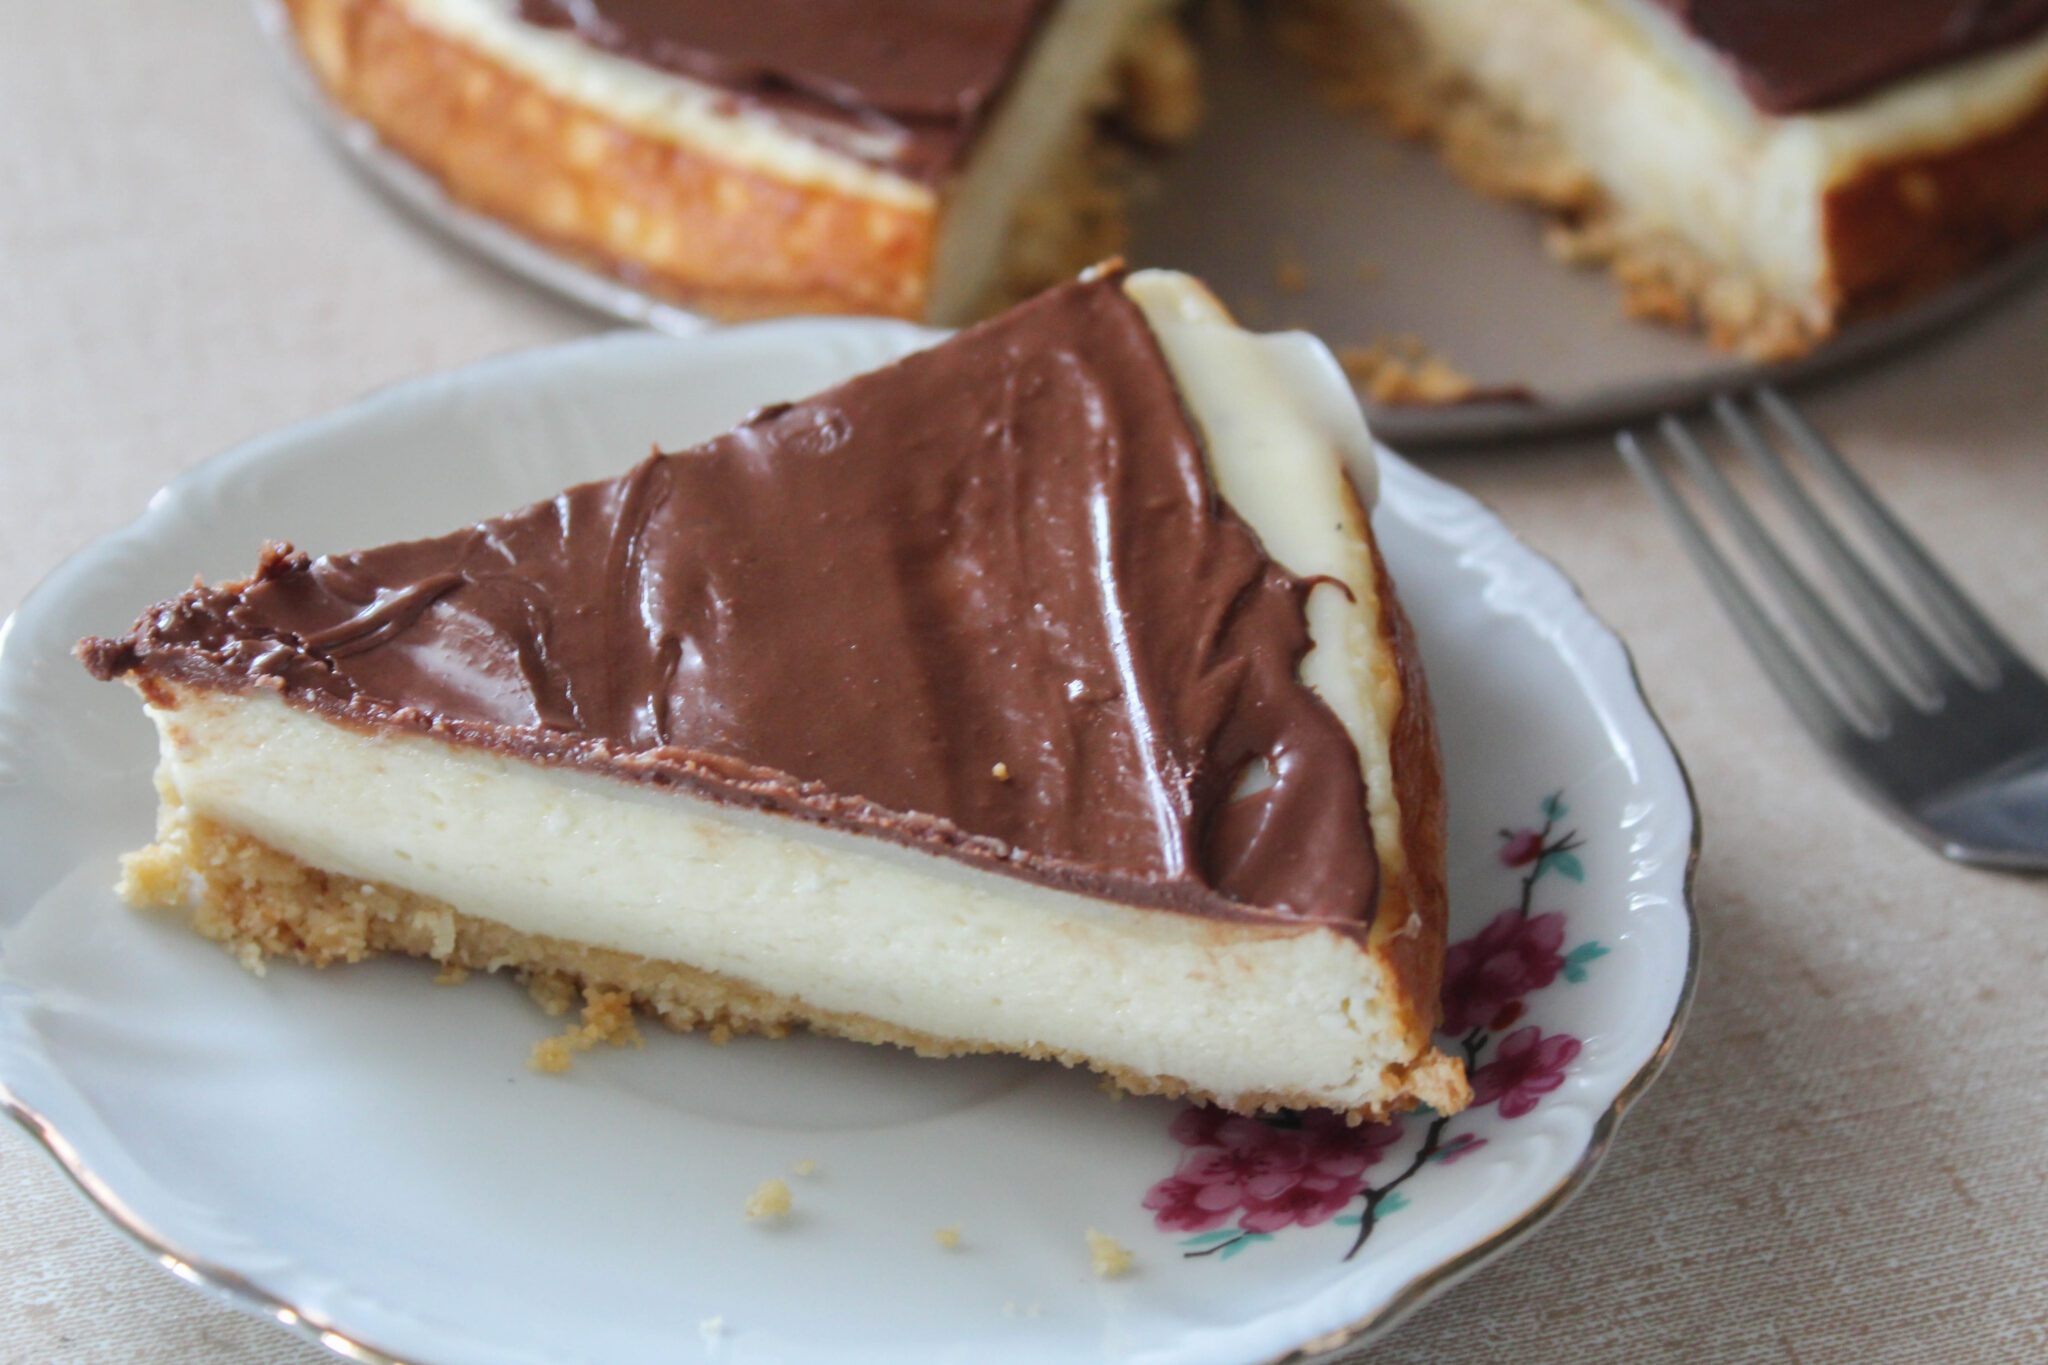 My Twix Cheesecake is like a candy bar in a pan! A smooth filling topped with silky caramel and chocolate. What could be better?